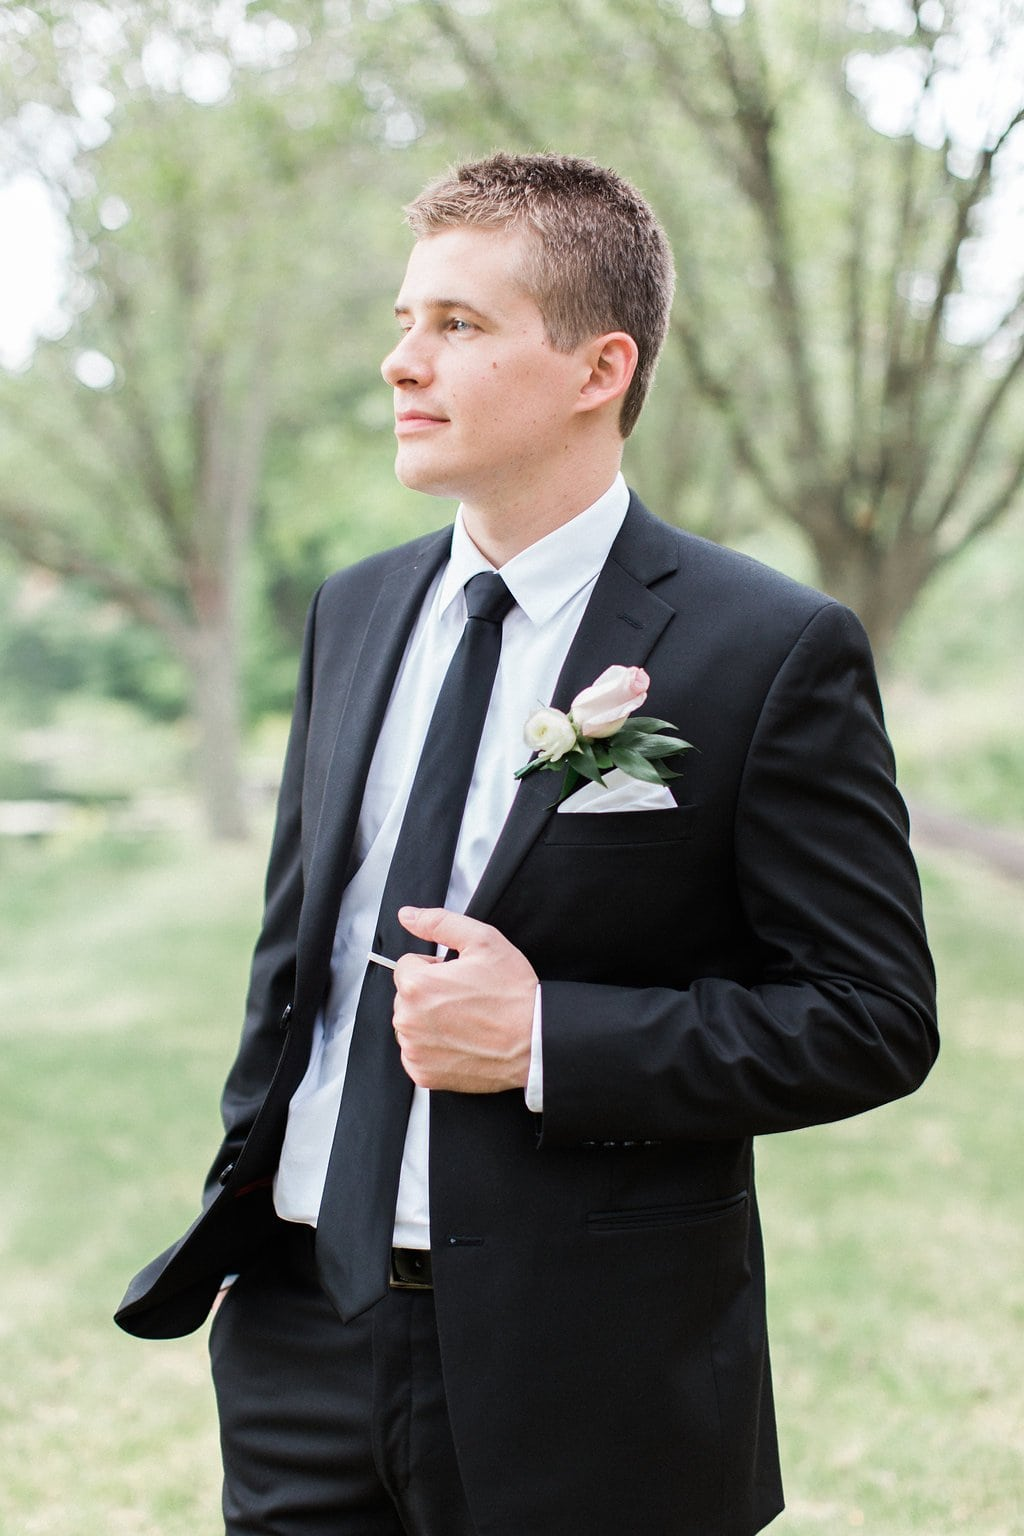 Groom posing in his black tux while holding his lapel